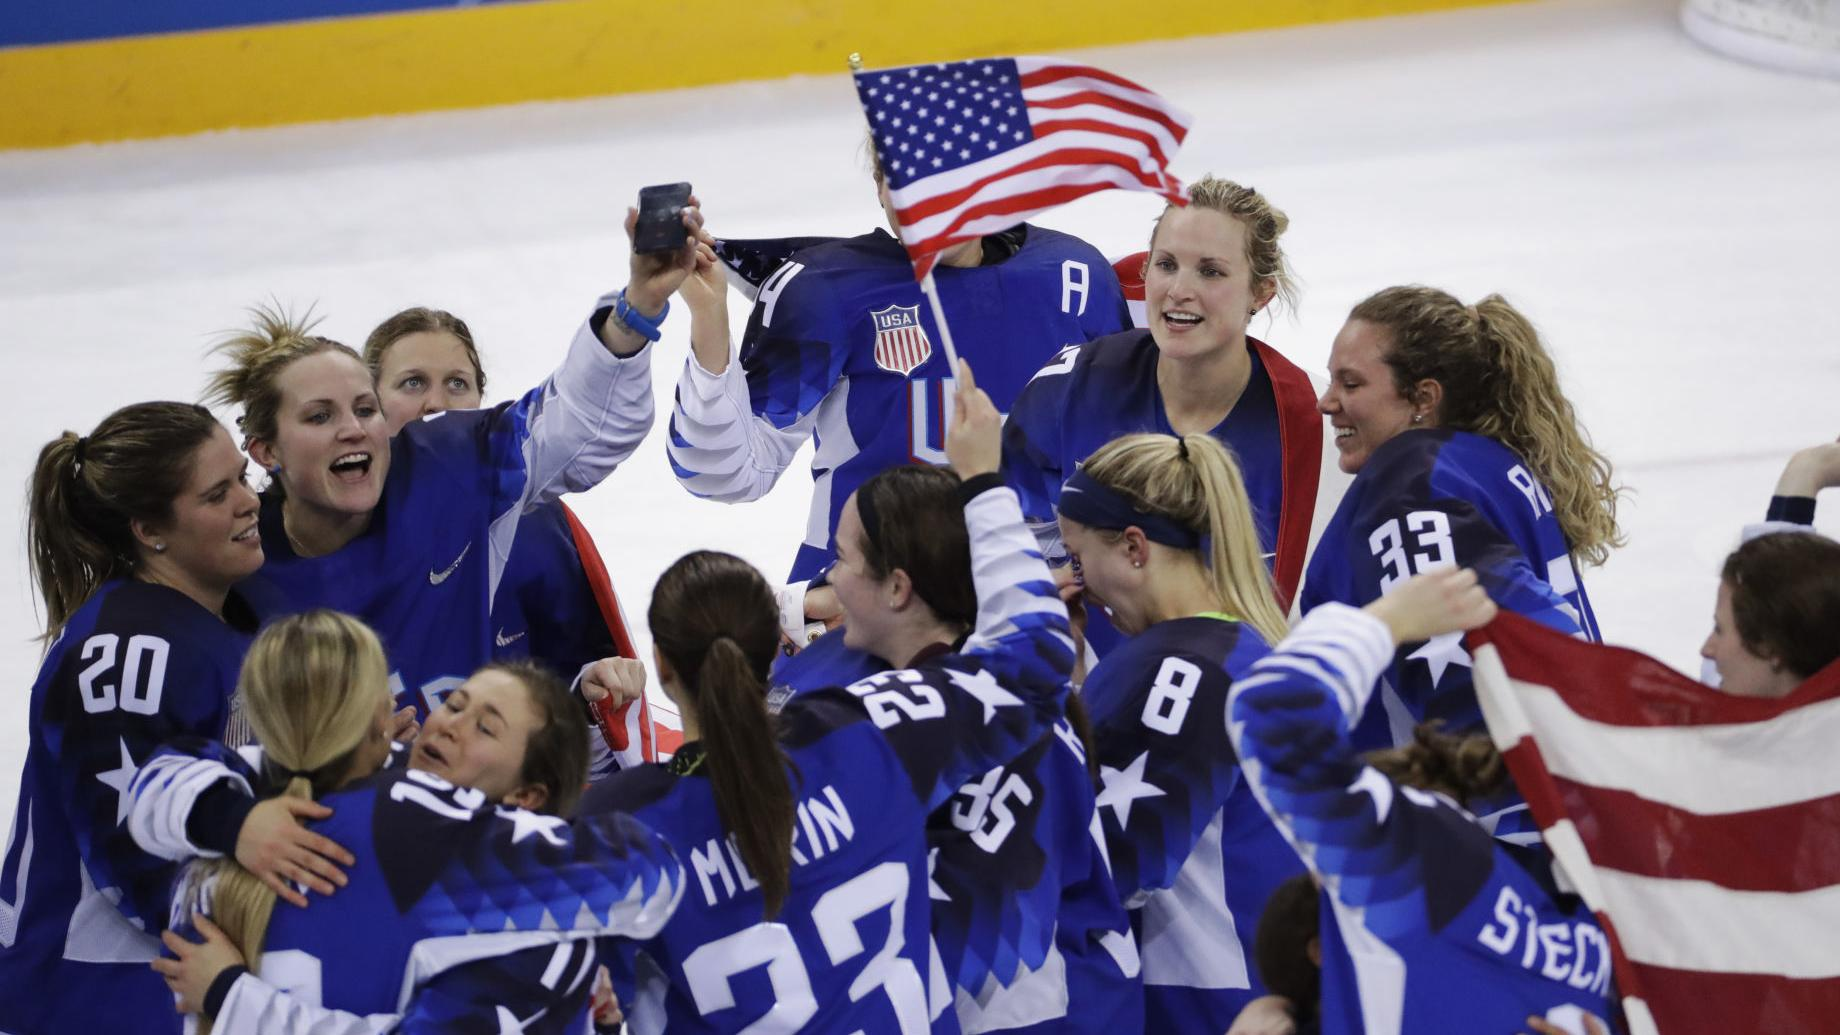 U.S. wins a shootout thriller in women's hockey, other results from overnight at the Olympics